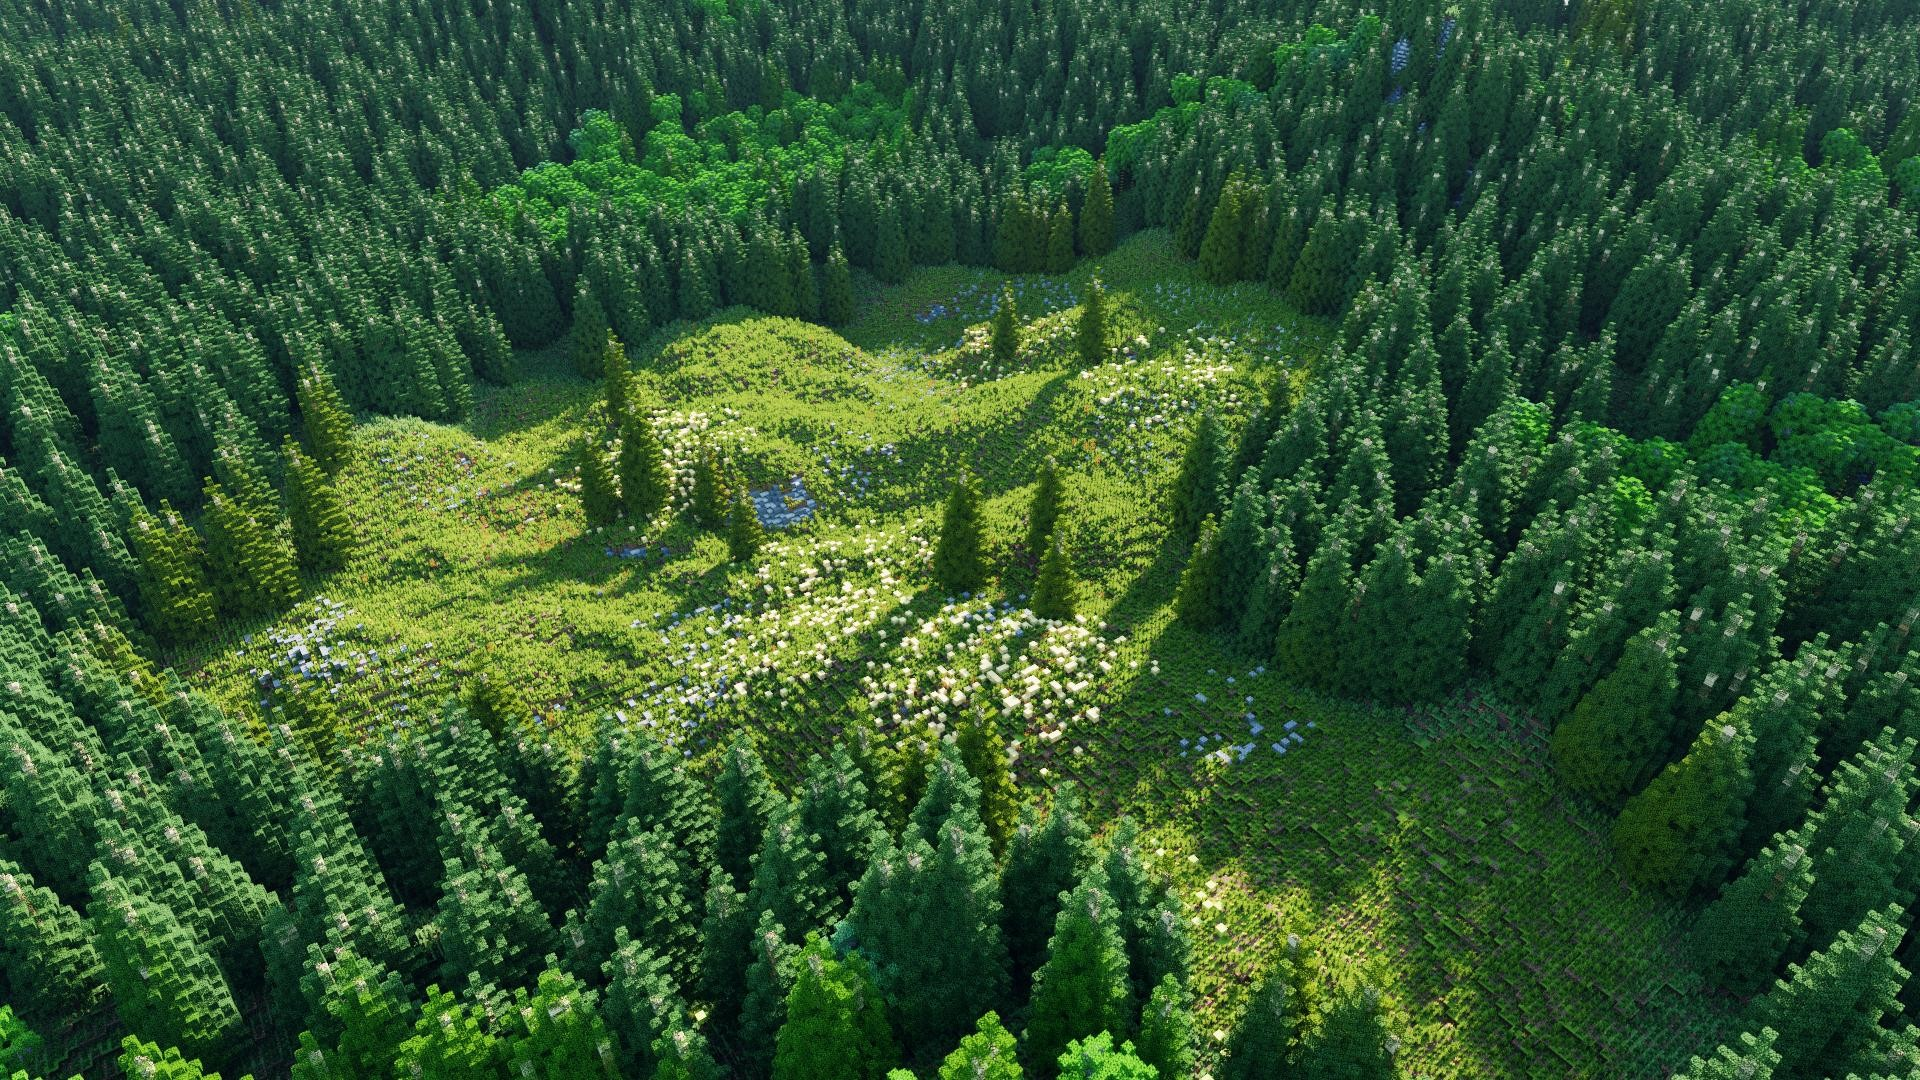 General 1920x1080 Minecraft Chunky green forest video games tree bark